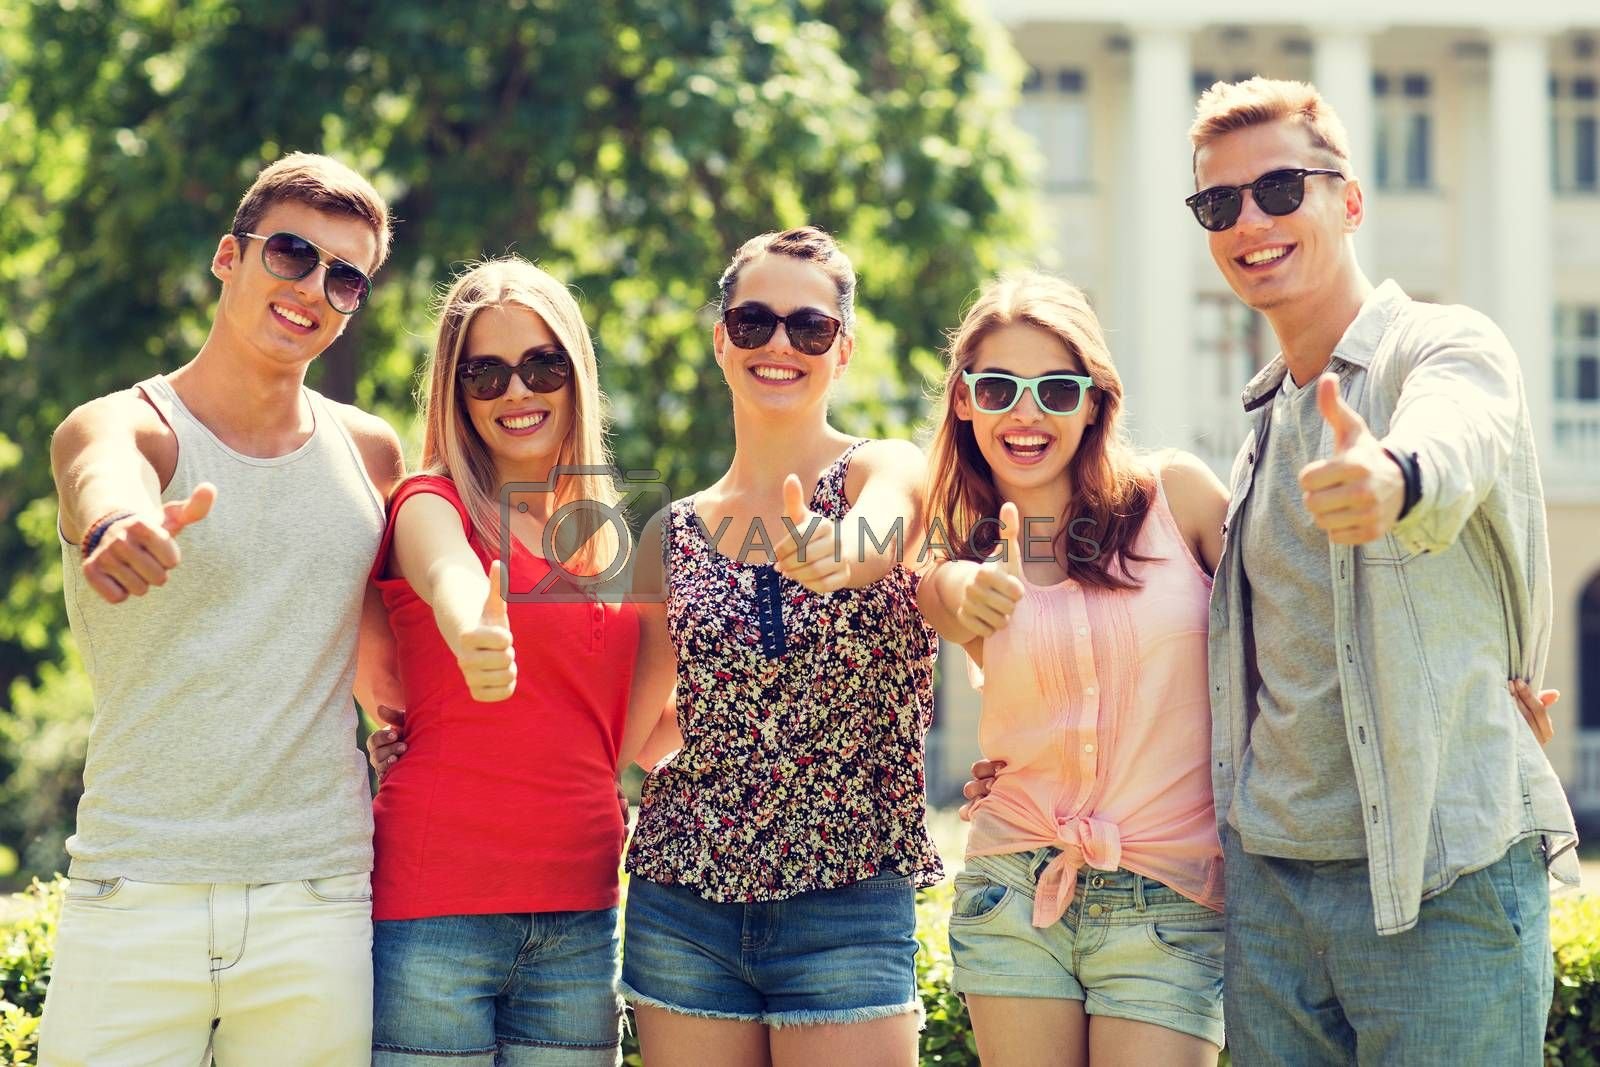 friendship, leisure, summer, gesture and people concept - group of smiling friends showing thumbs up outdoors